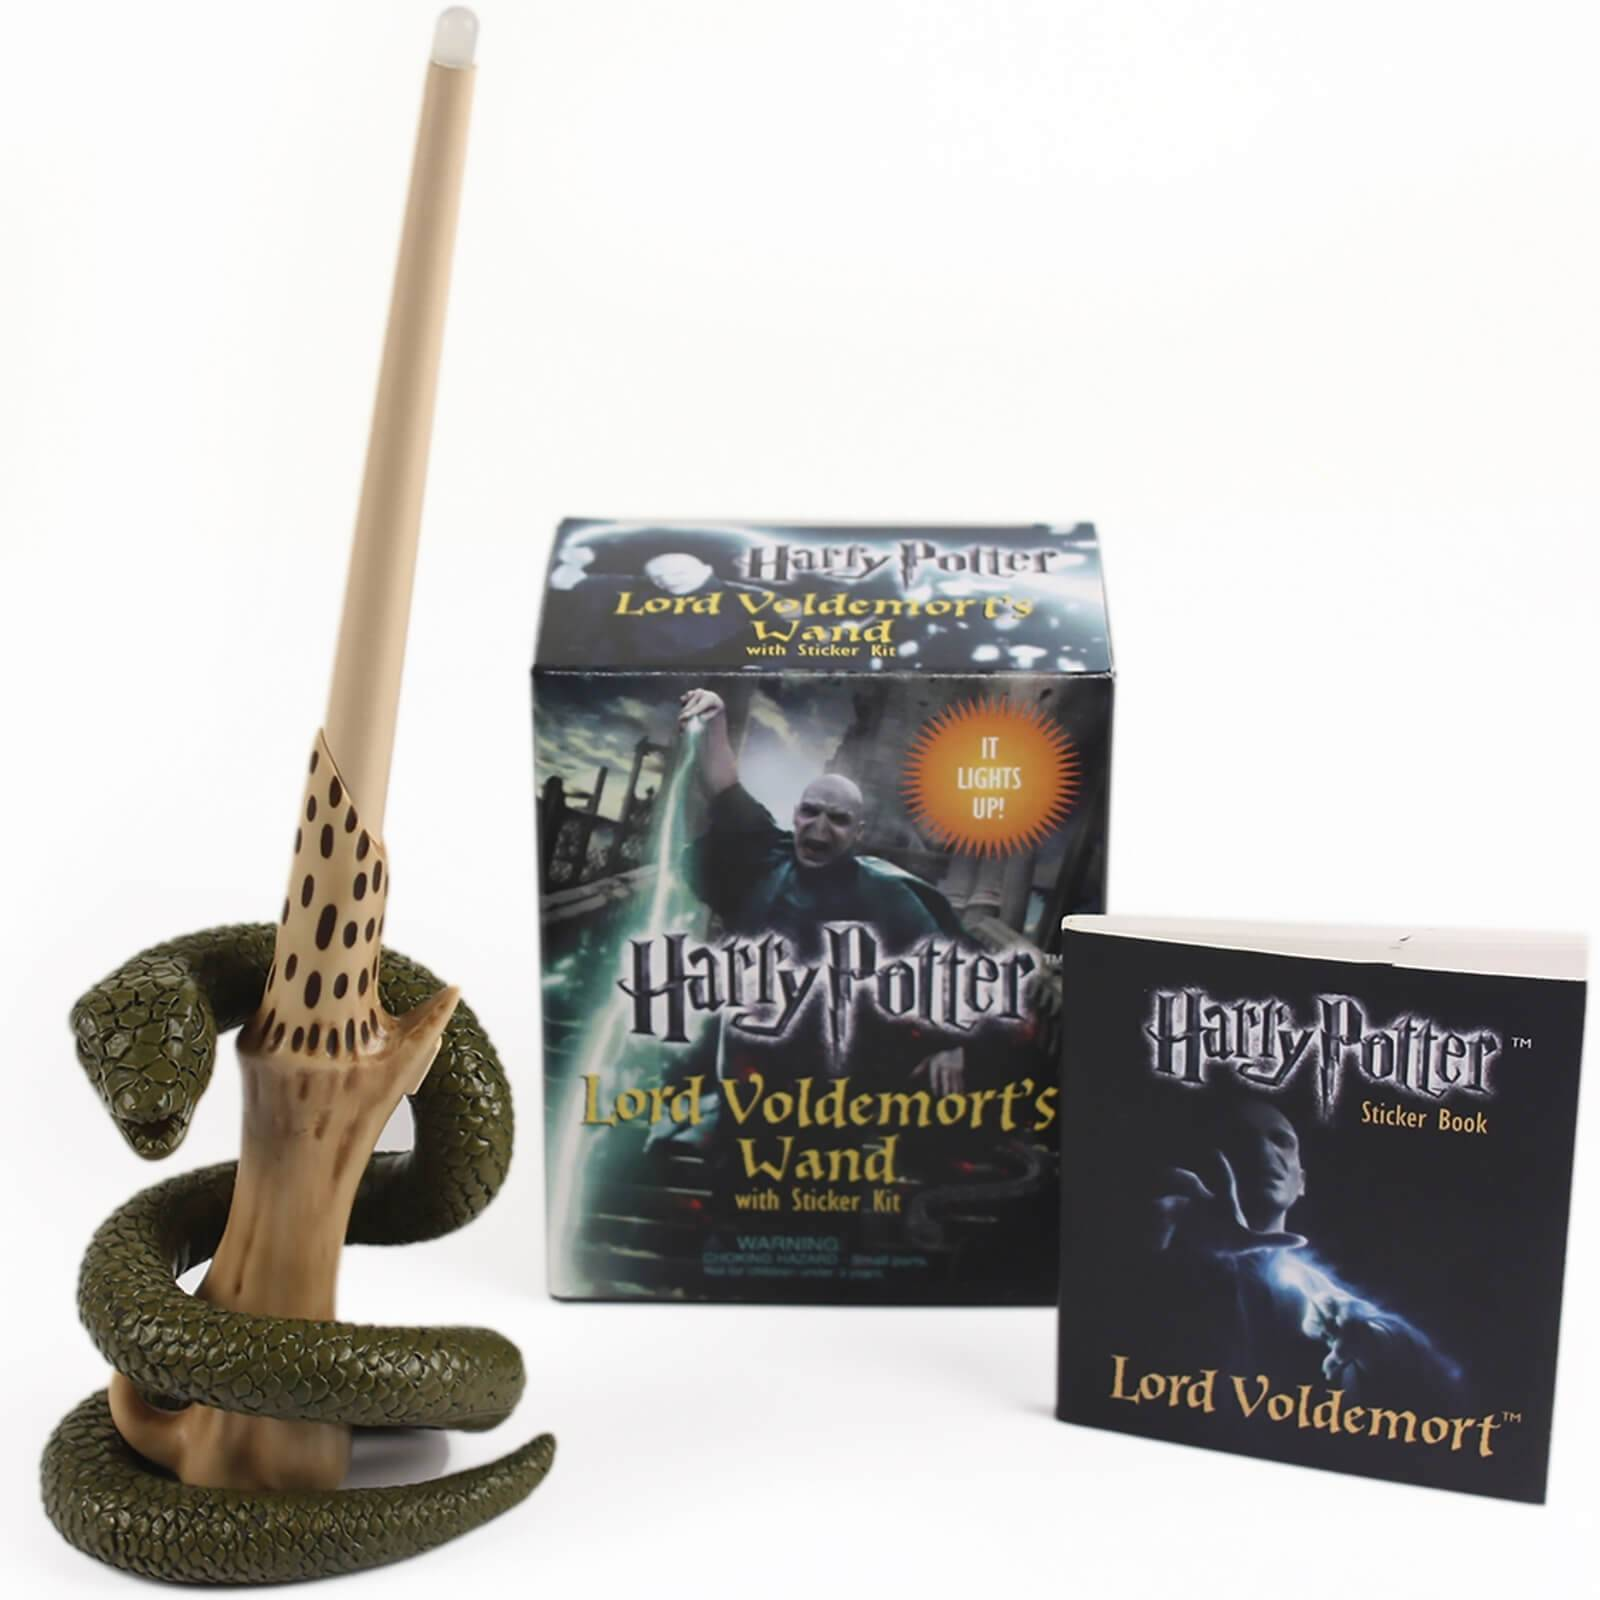 Octopus Harry Potter Voldemort's Wand with Sticker Kit